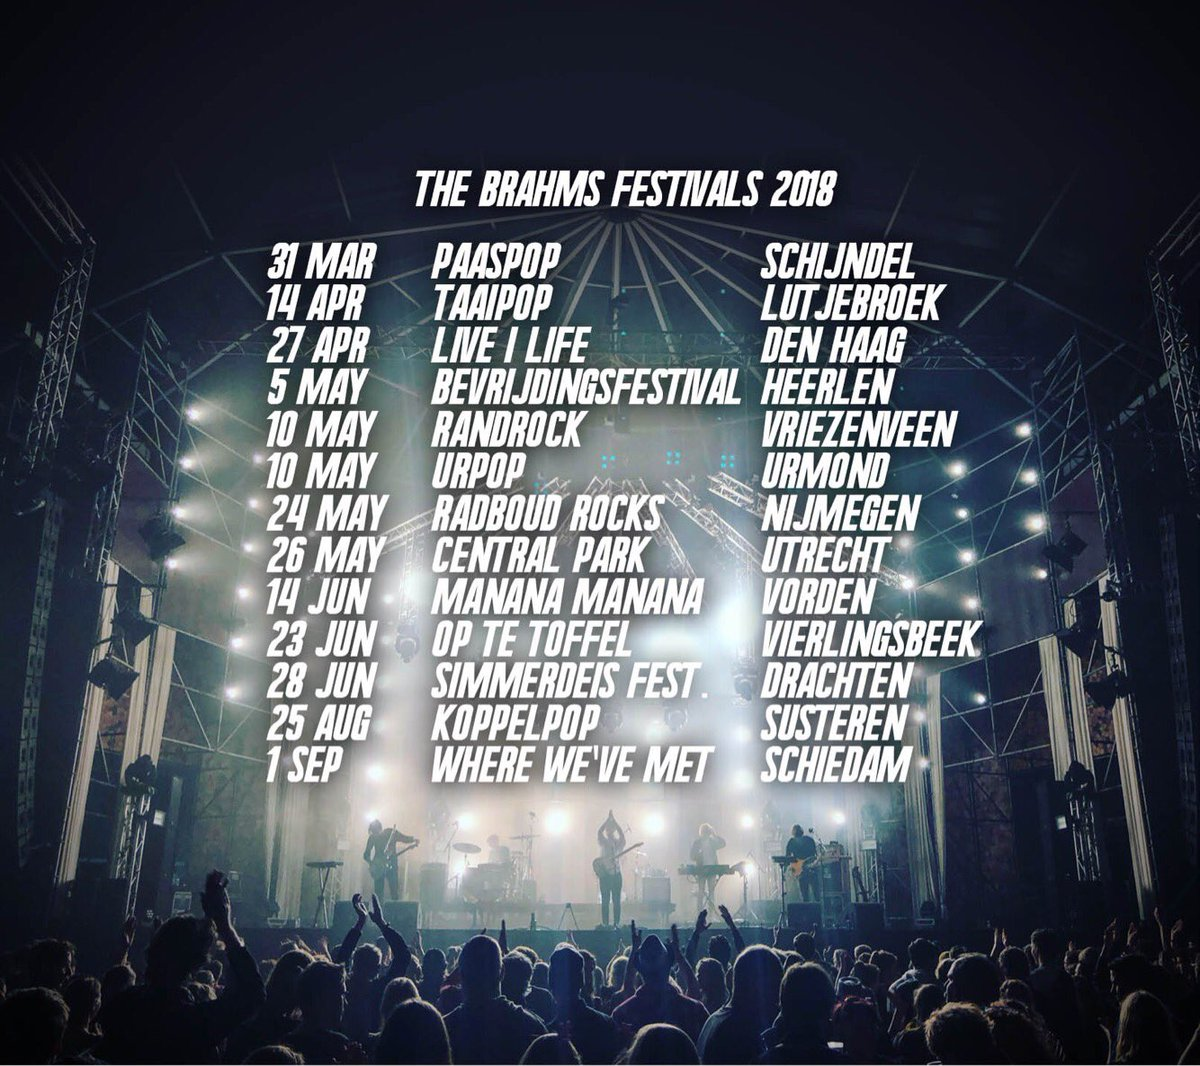 The Brahms On Twitter First Festivals Of This Summer